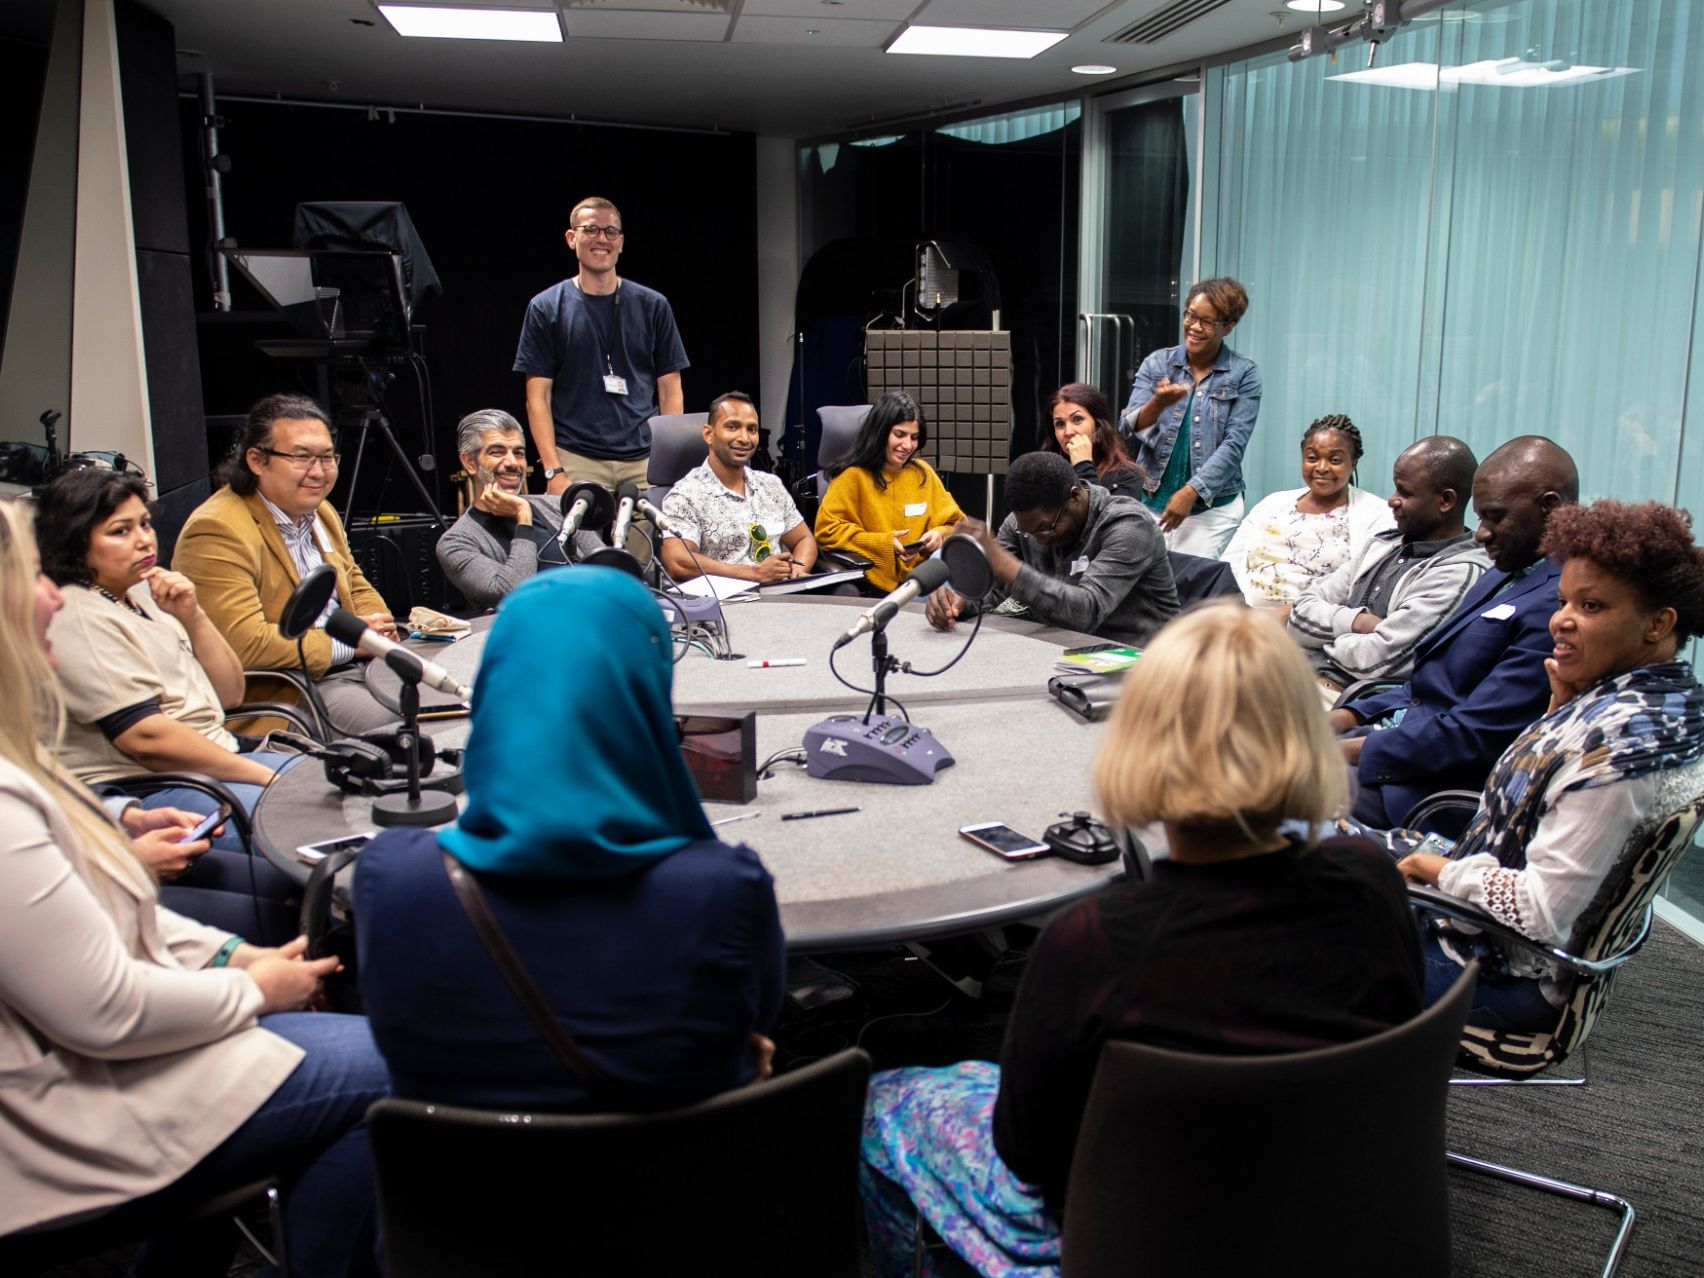 Participants in the Refugee Jouranlism Project with UAL, at a discussion table